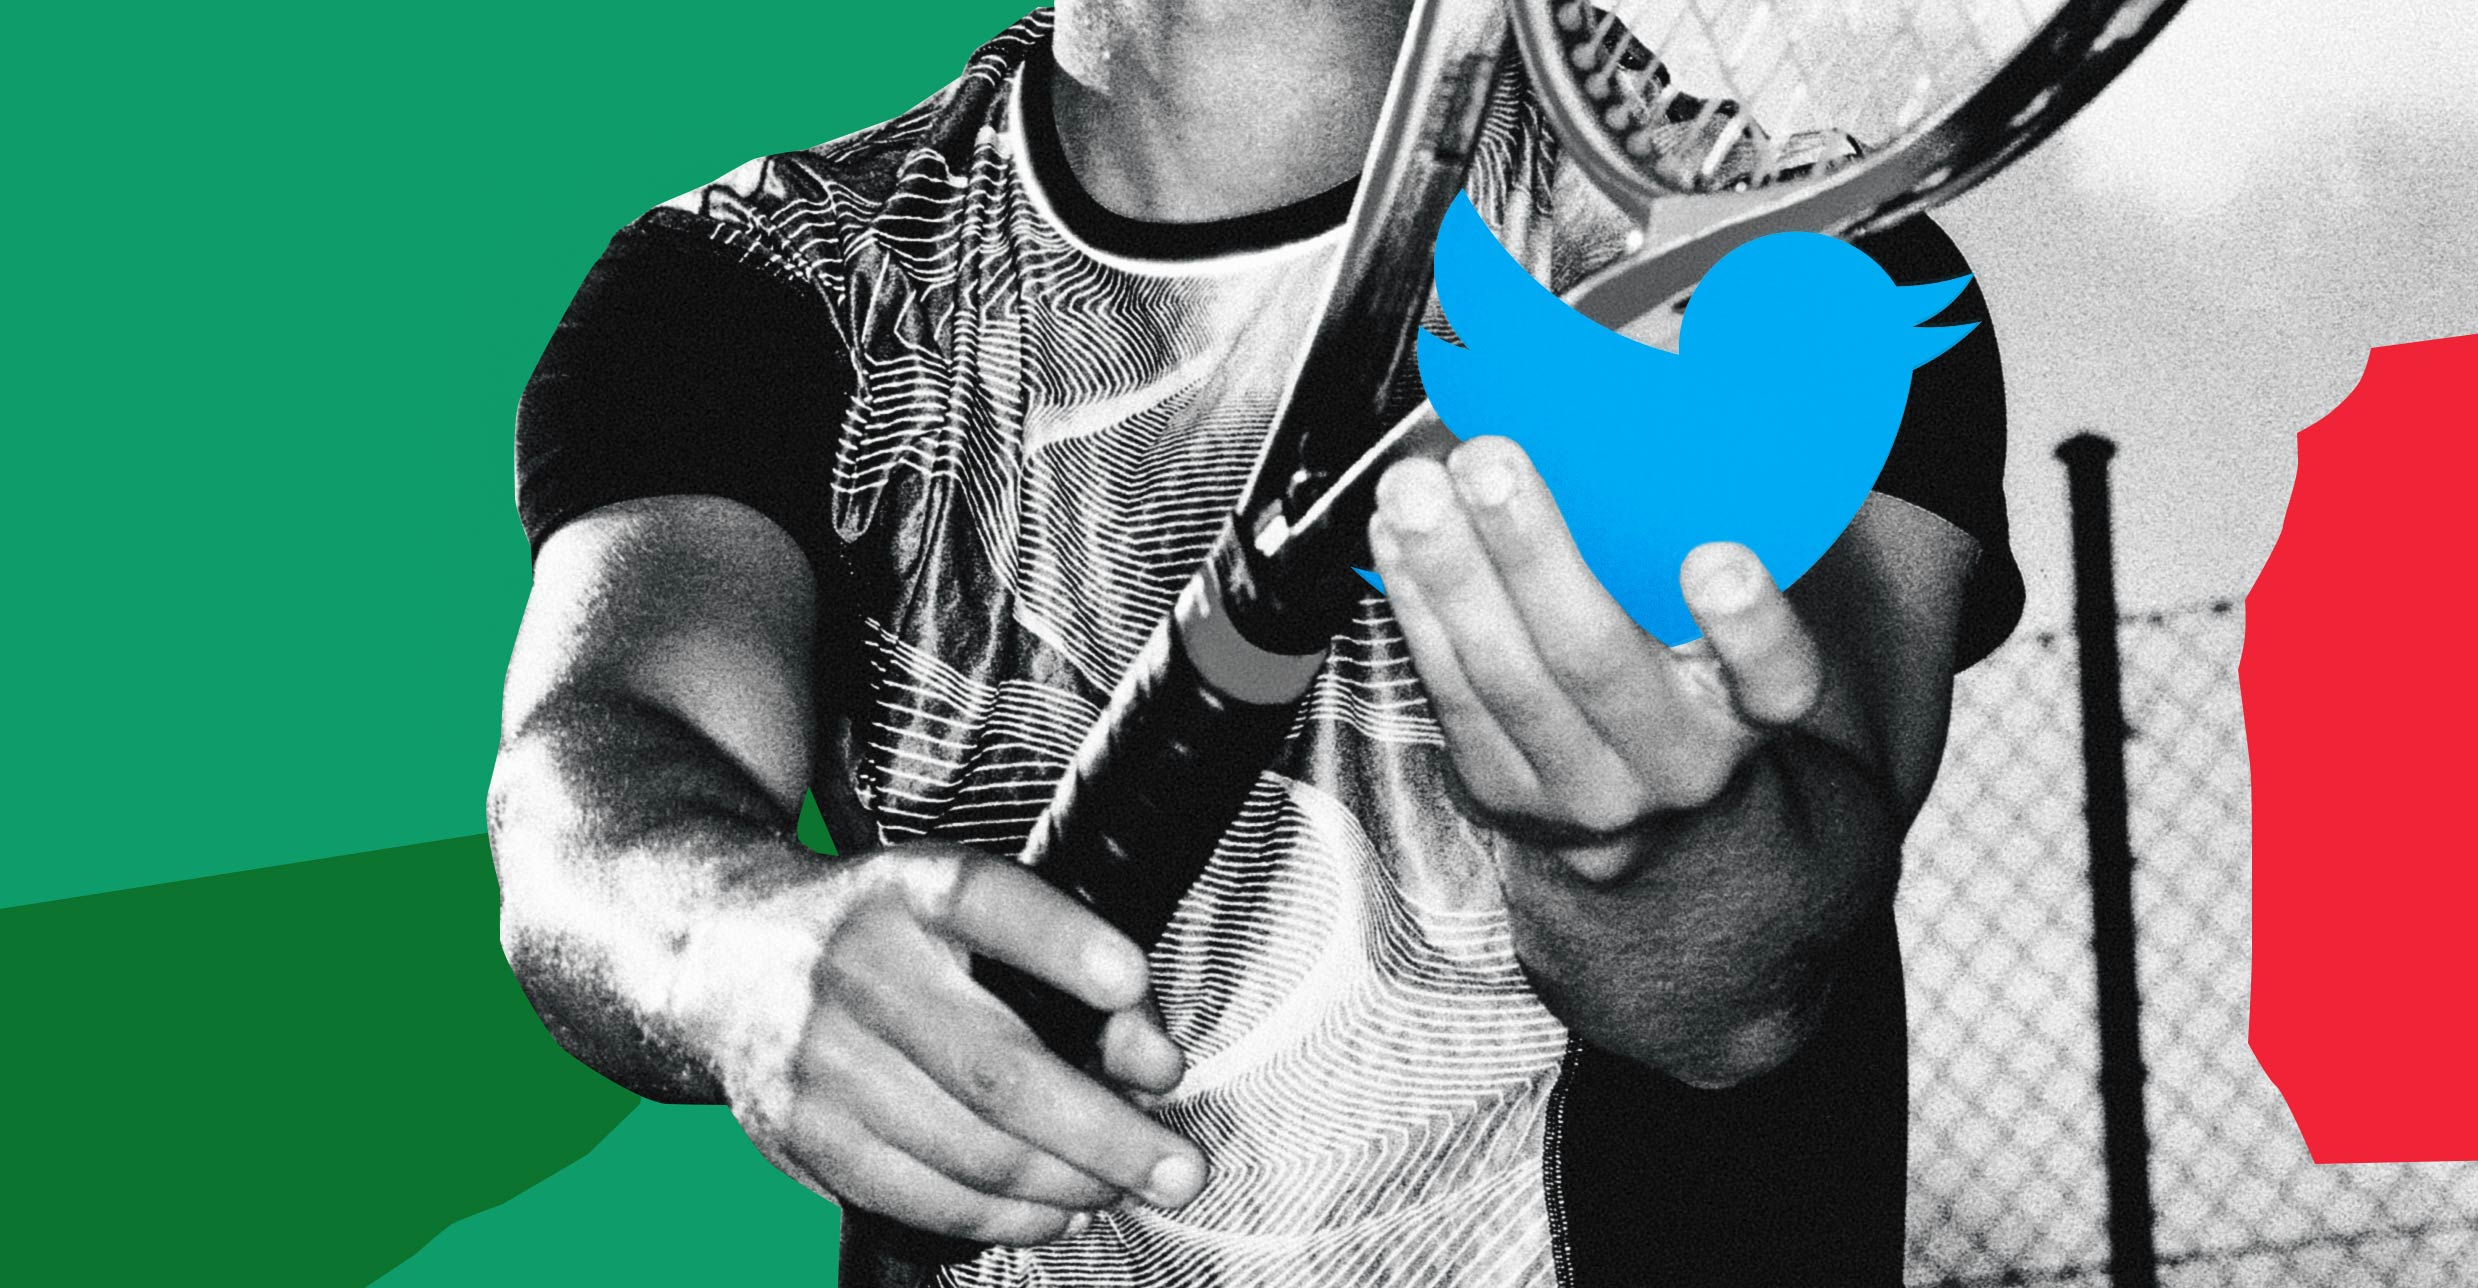 Photo illustration: anonymous tennis player holding a racket and preparing to serve a Twitter bird.